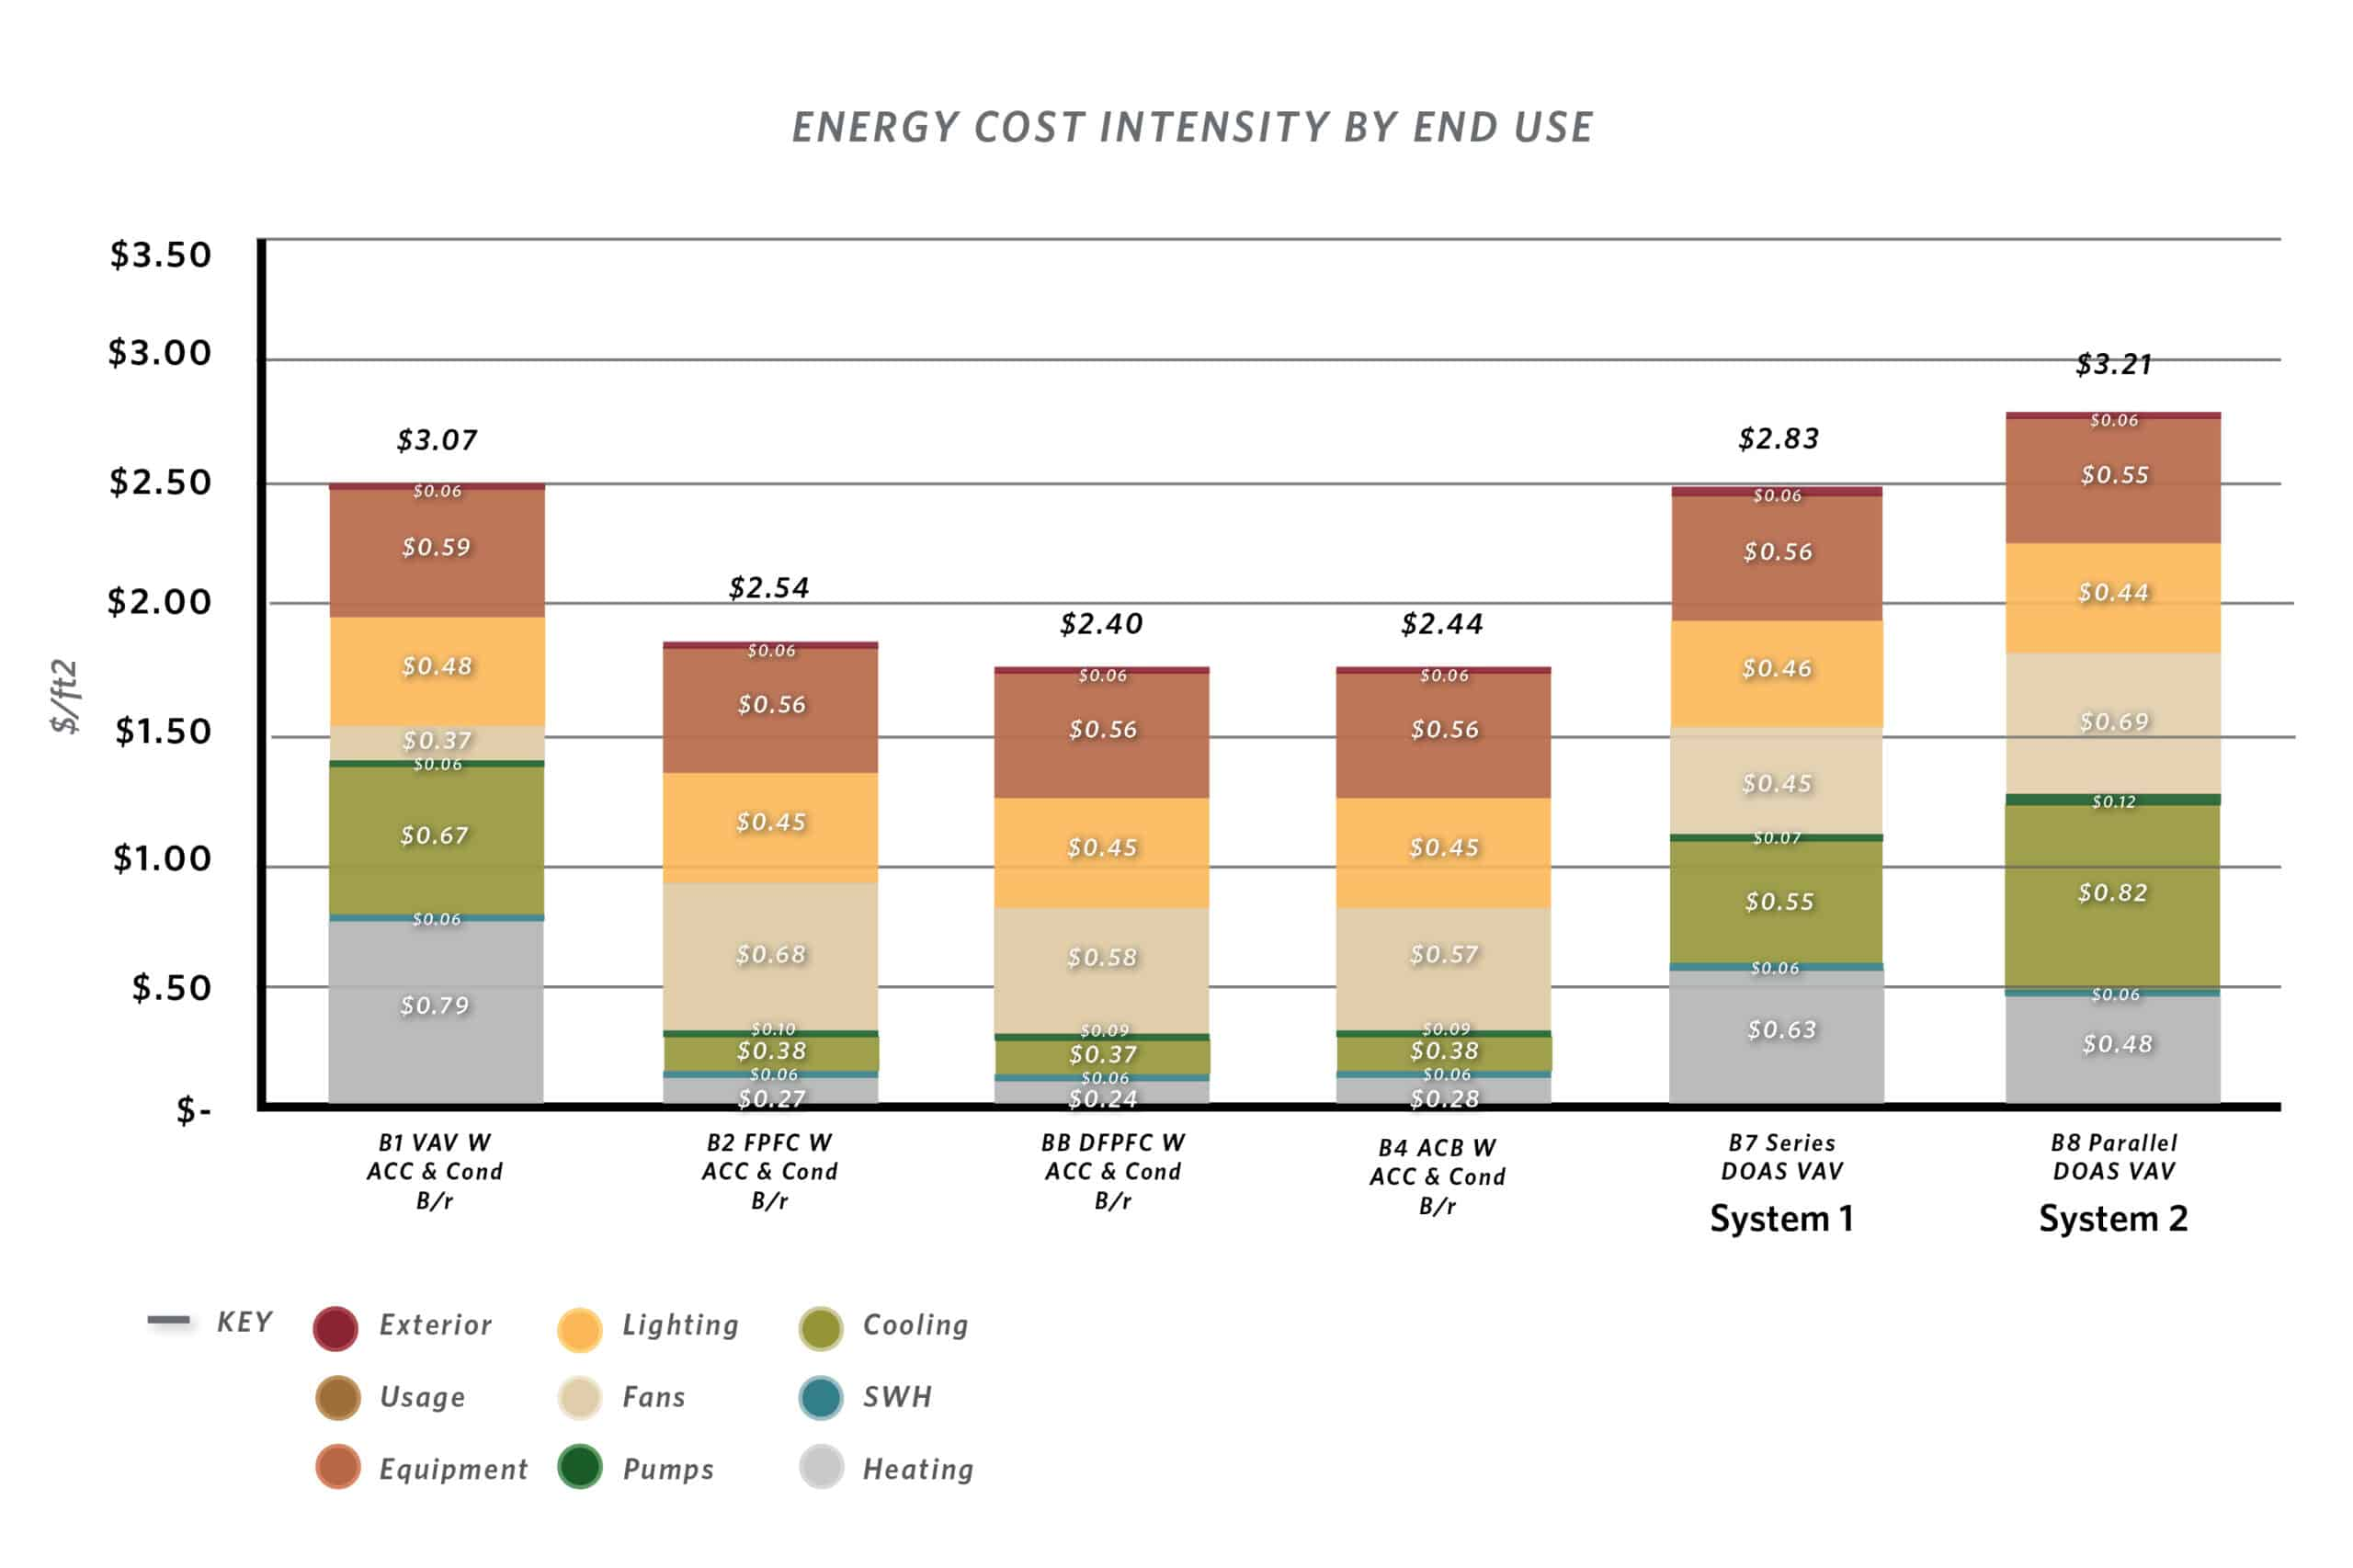 A bar chart showing Energy Cost Intensity by End Use